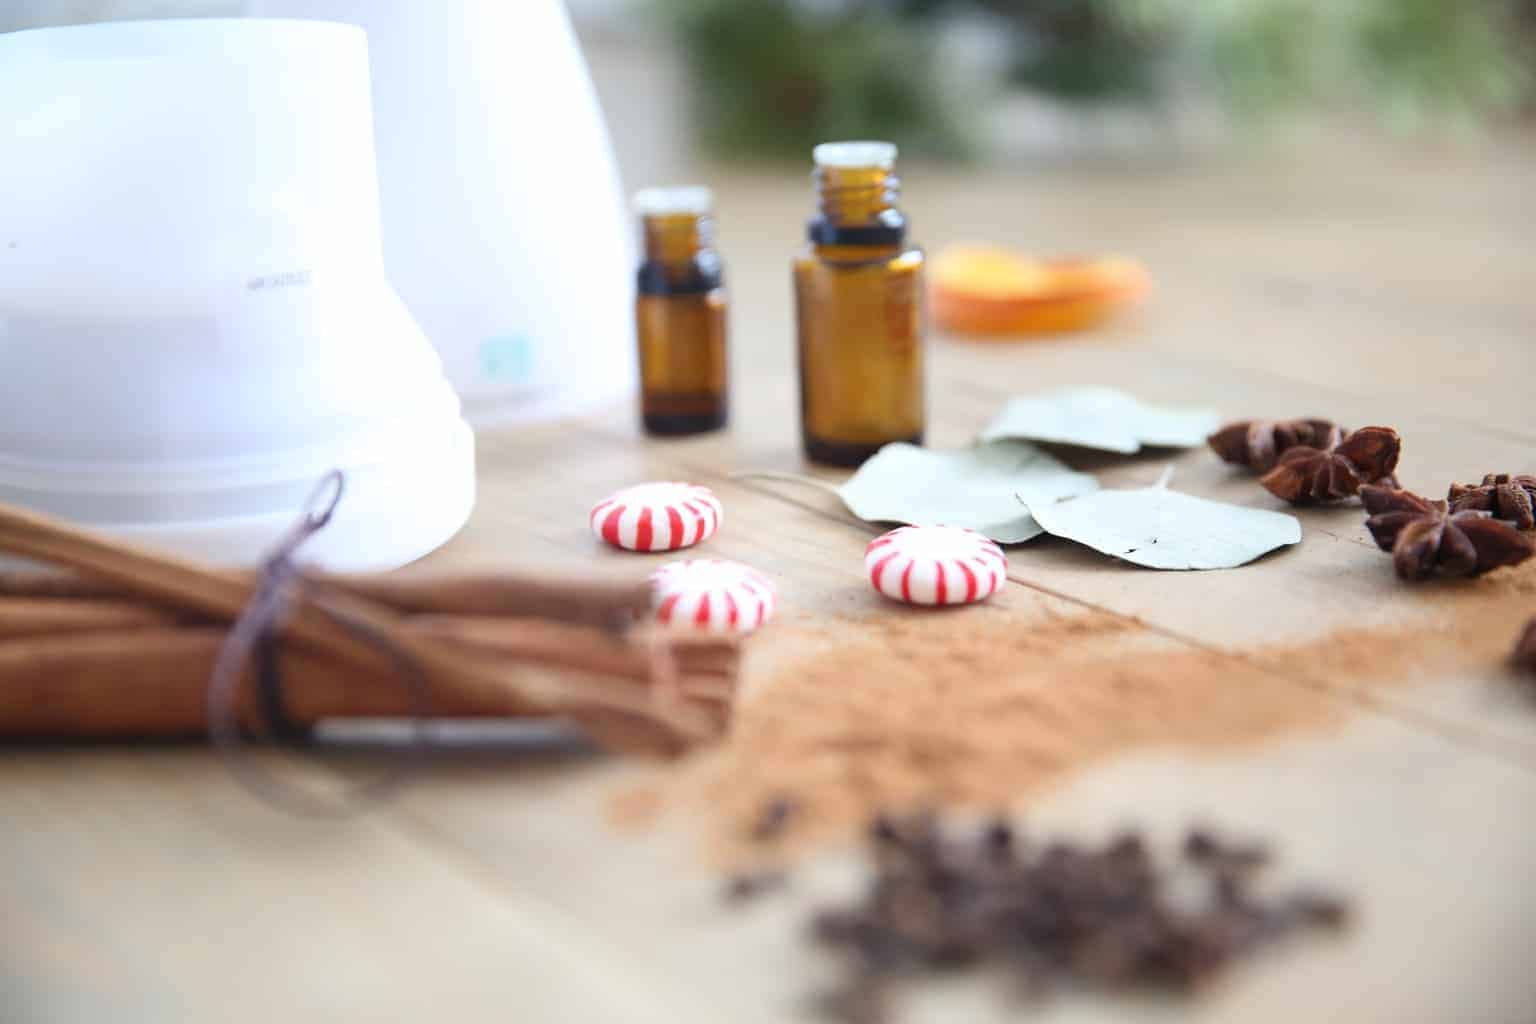 Cinnamon essential oil, peppermint essential oil, clove essential oil, eucalyptus essential oil, and wild orange essential oil are some of the best scents for christmas or winter diffuser blends.